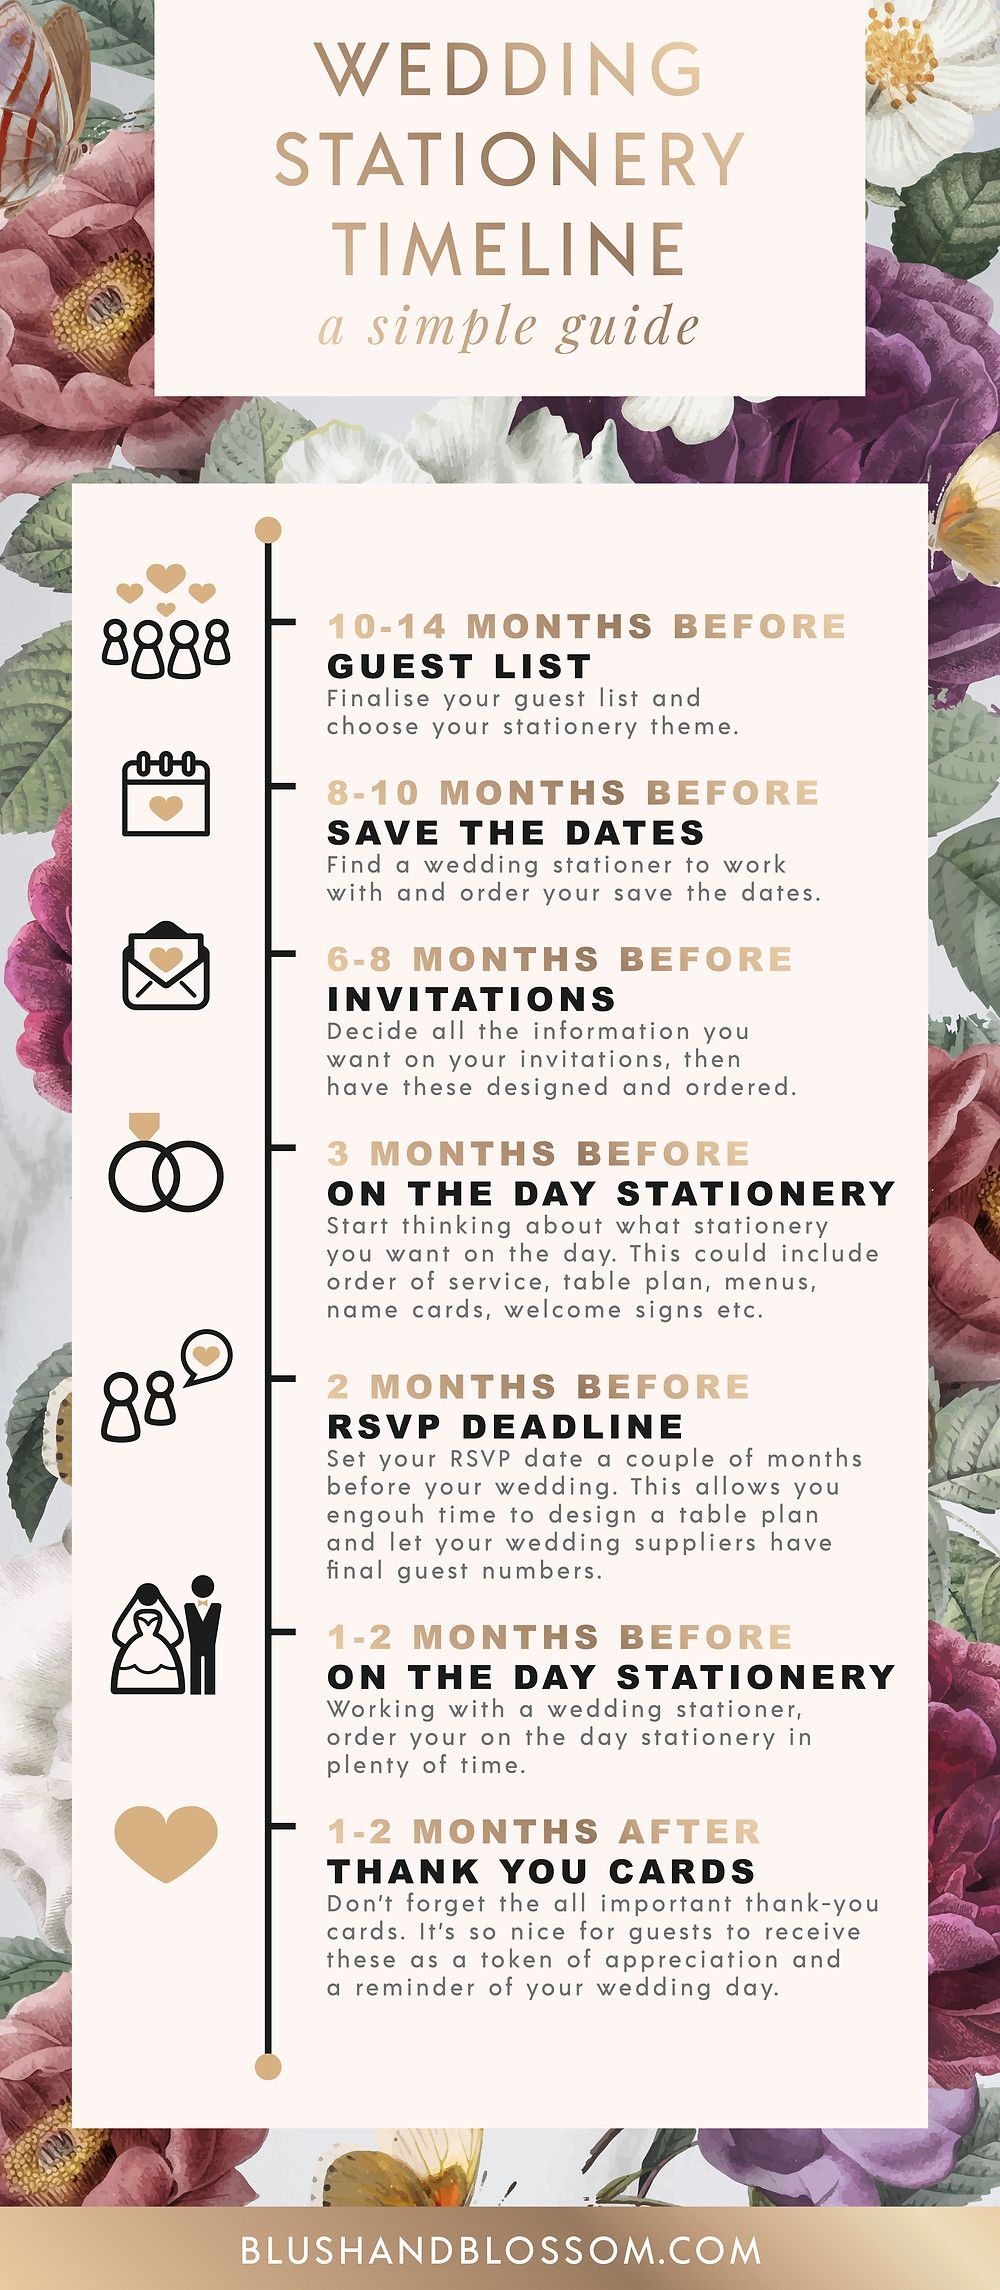 Wedding stationery timeline for when to send out invitations